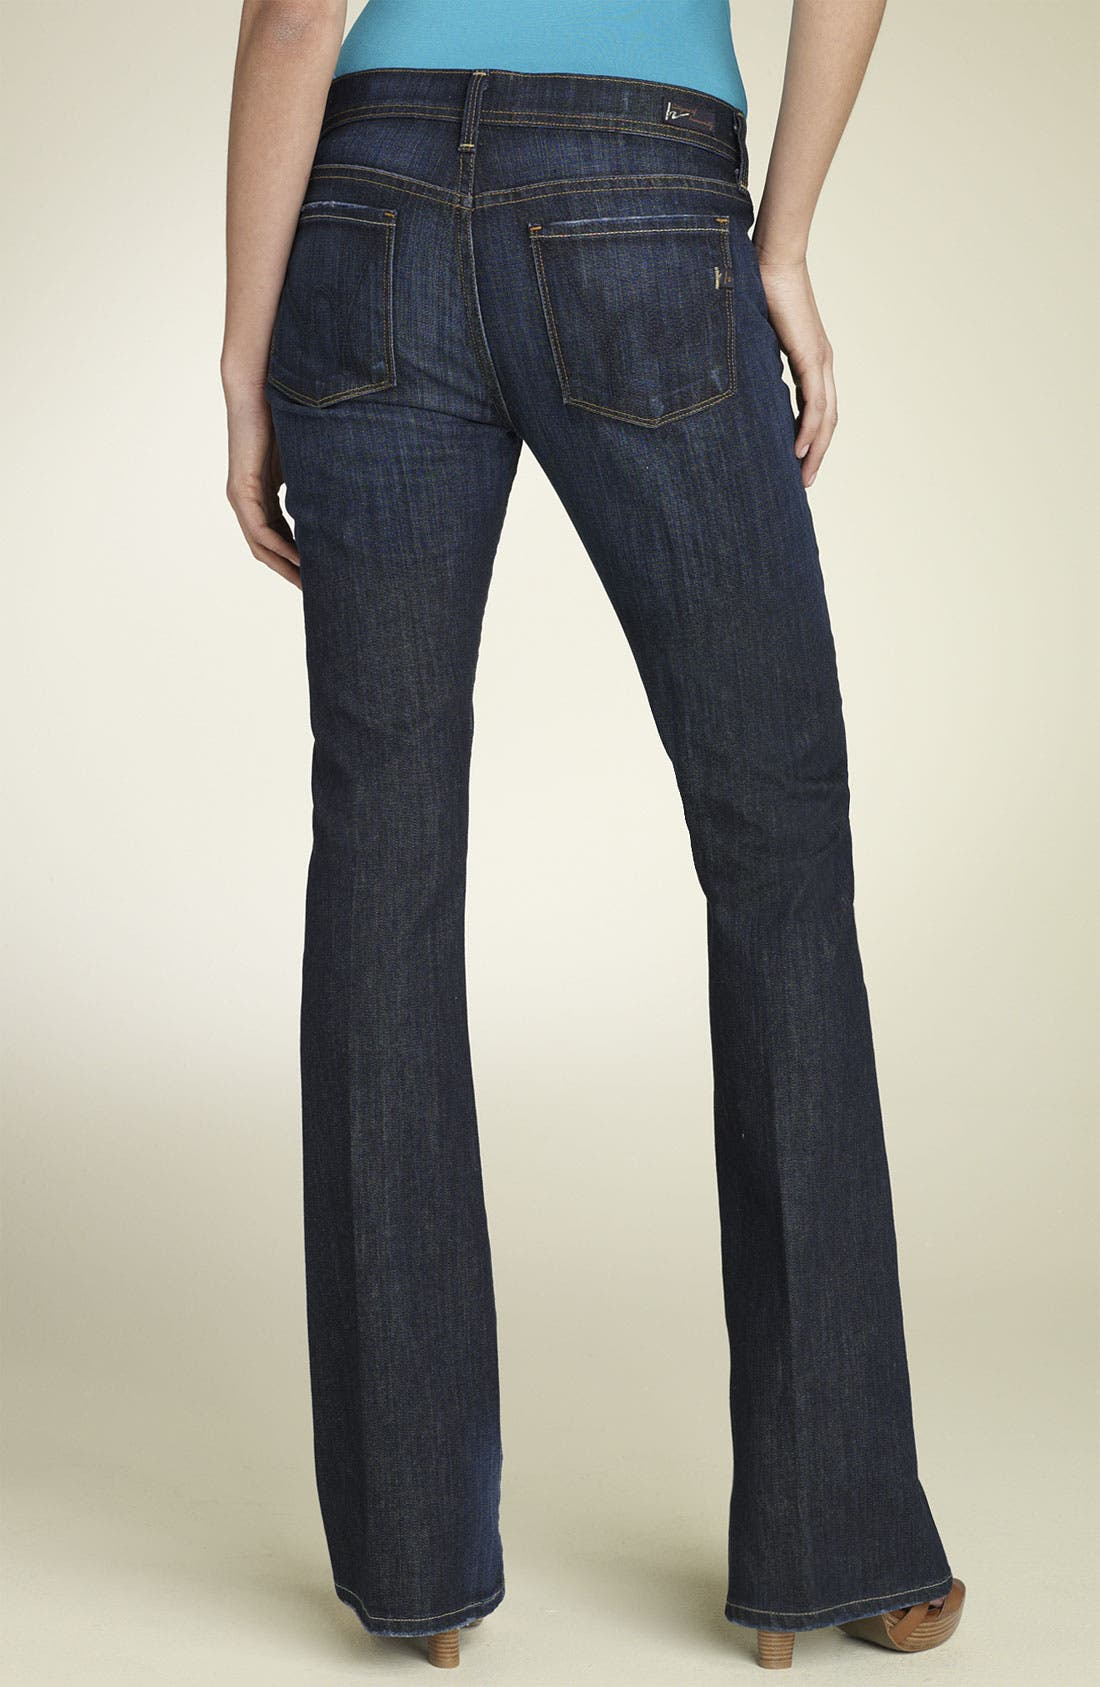 'Ingrid' Stretch Jeans,                             Main thumbnail 1, color,                             404